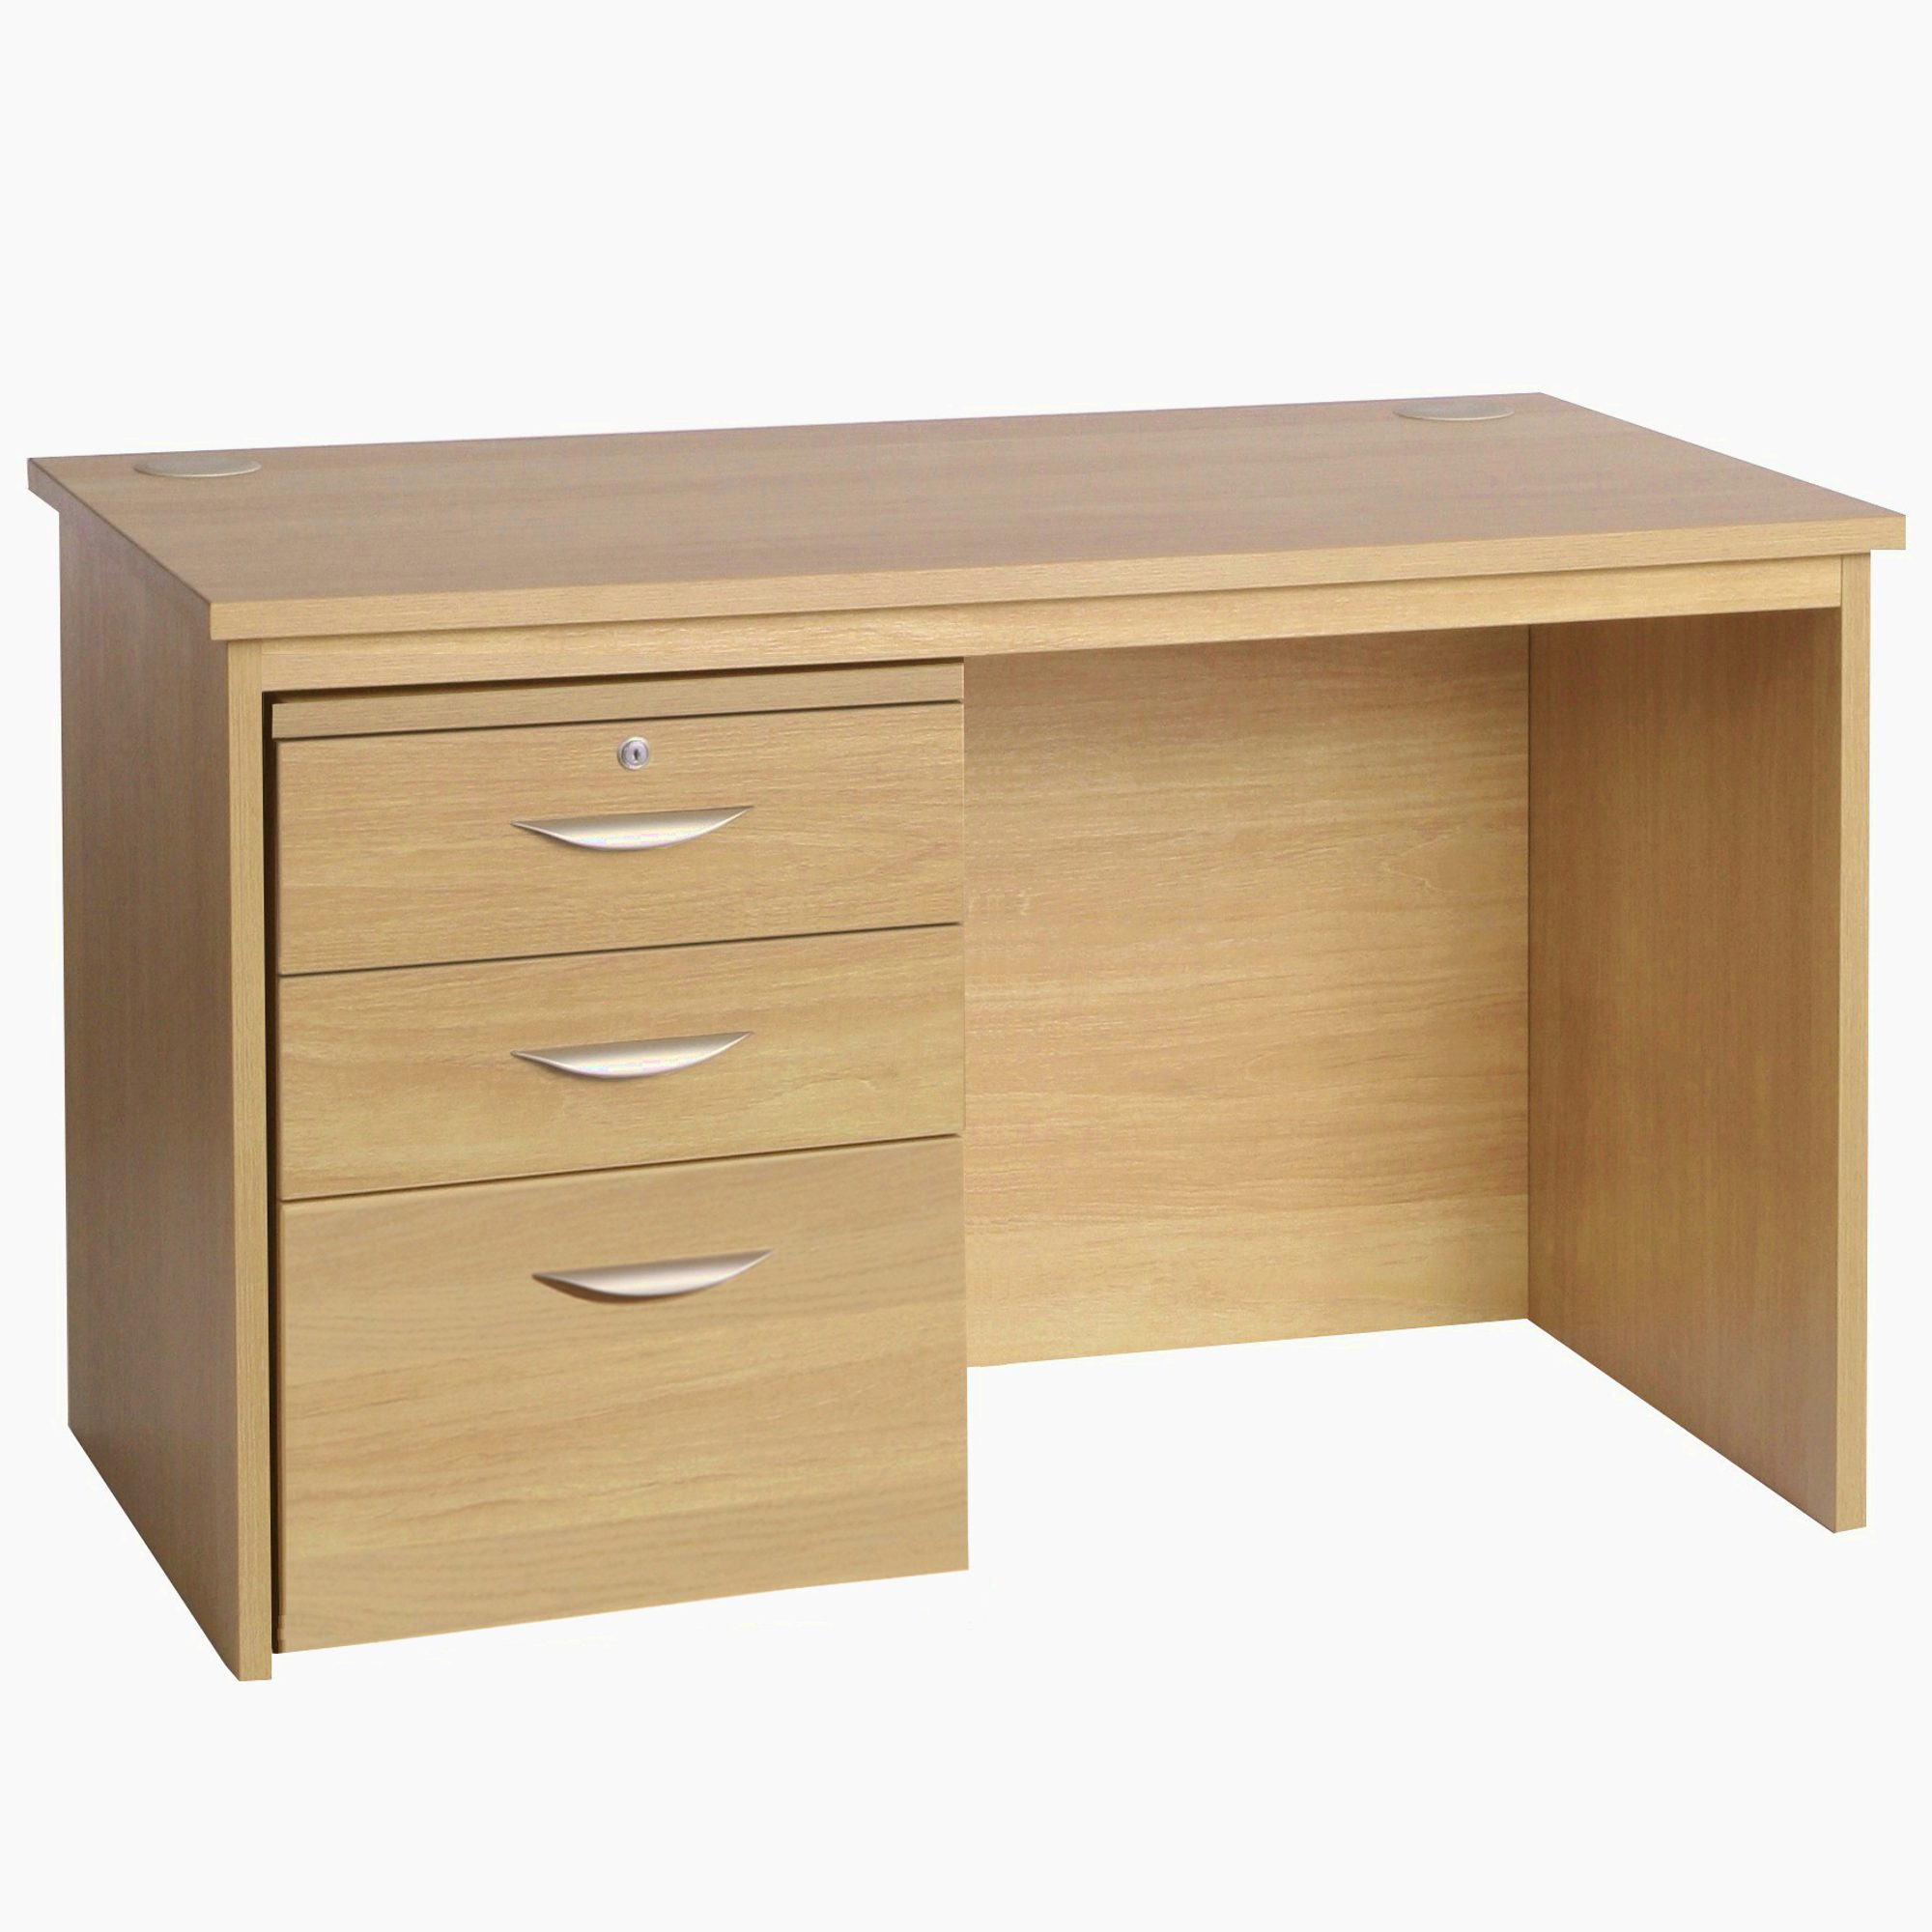 Desk Height Freestanding Large Home Office With 3 Drawer Unit Filing Cabinet